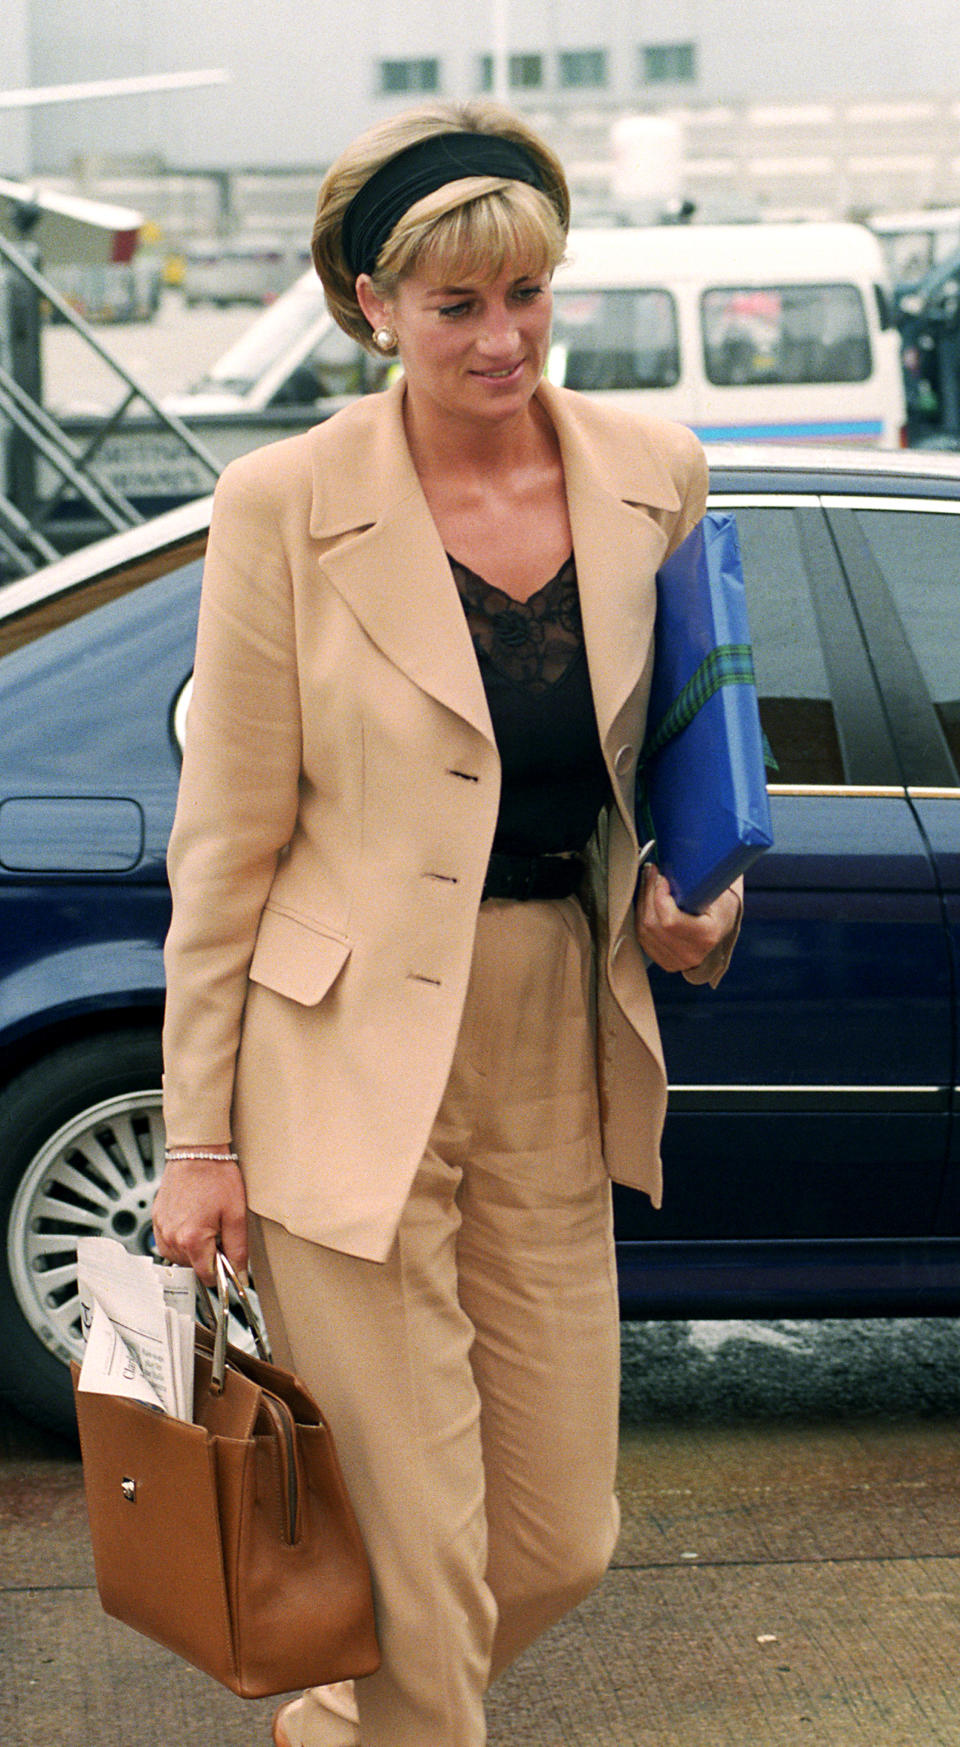 <p>This is by far one of our favourite looks. Here, Princess Diana is photographed at Heathrow Airport, as she prepares to board a flight to New York for a private preview of her dresses before they go to auction at Christie's. Diana opted for a camel two-piece suit finished with a sleek headband for the momentous occasion.<br><em>[Photo: PA]</em> </p>